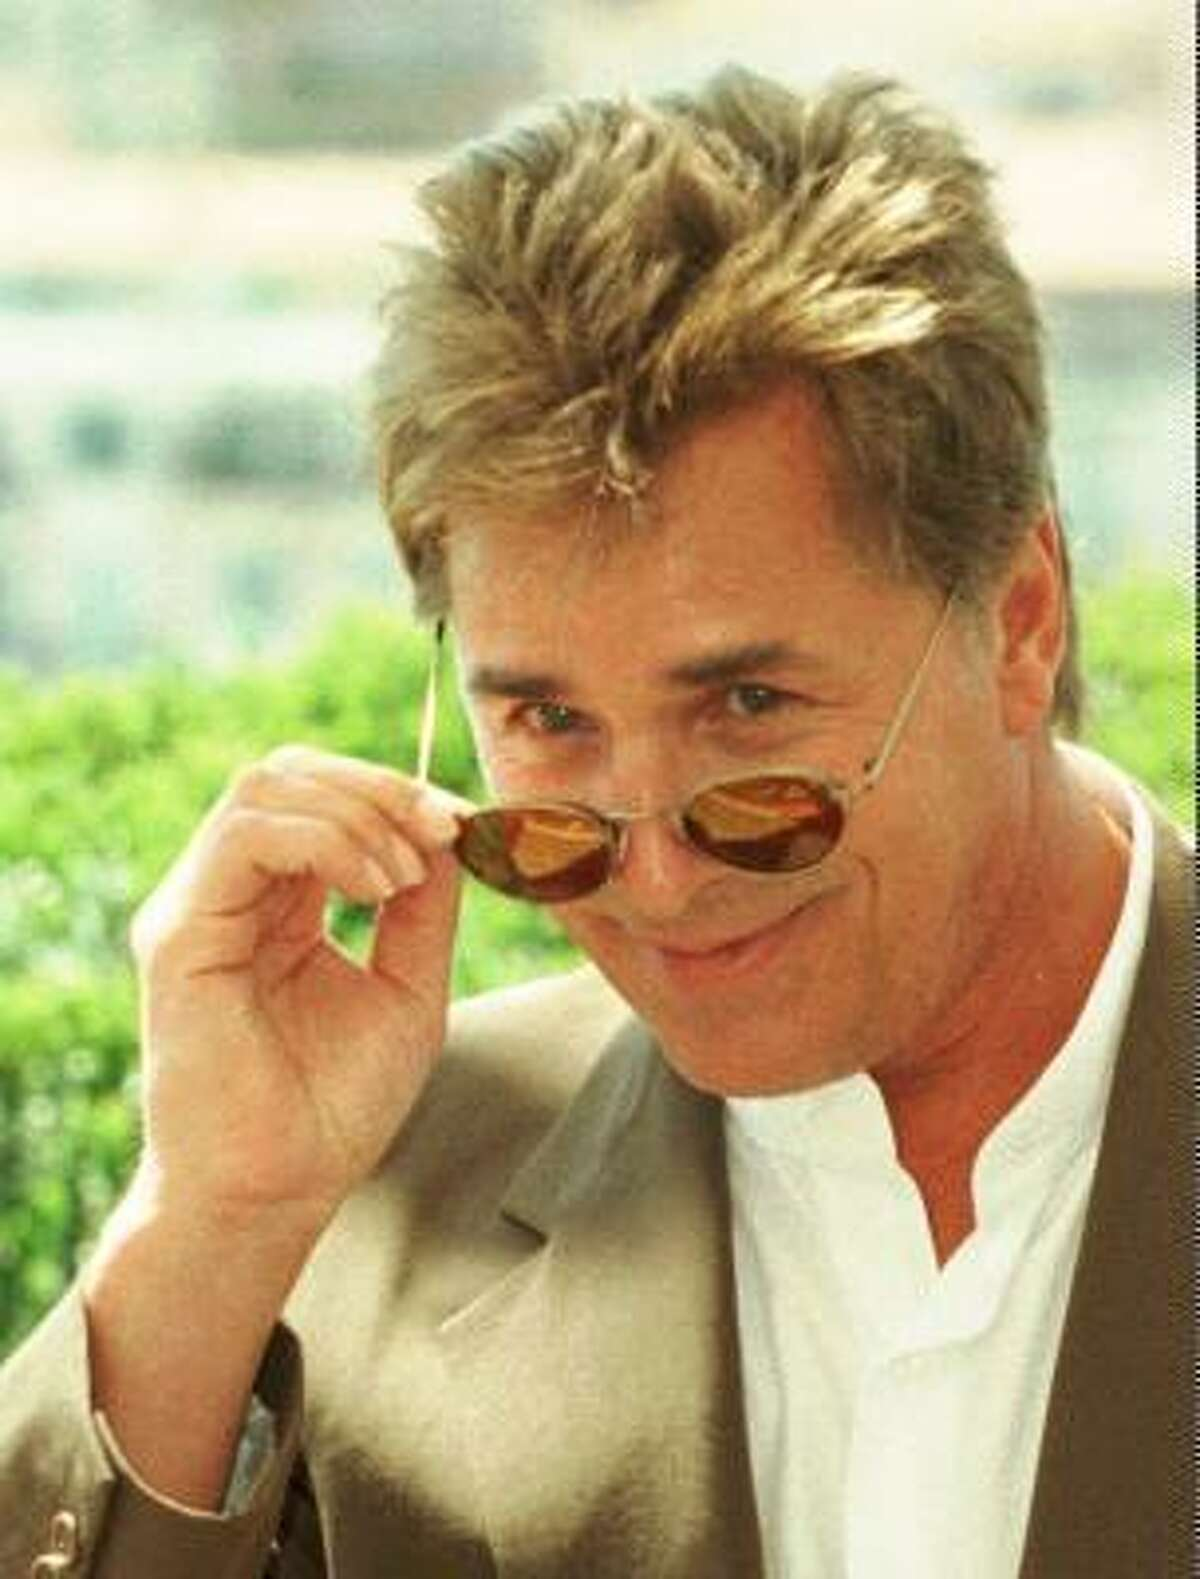 Don Johnson released two albums in the 80s and managed to get one top of the charts hit, Heartbeat. How he did it? No one will ever know.